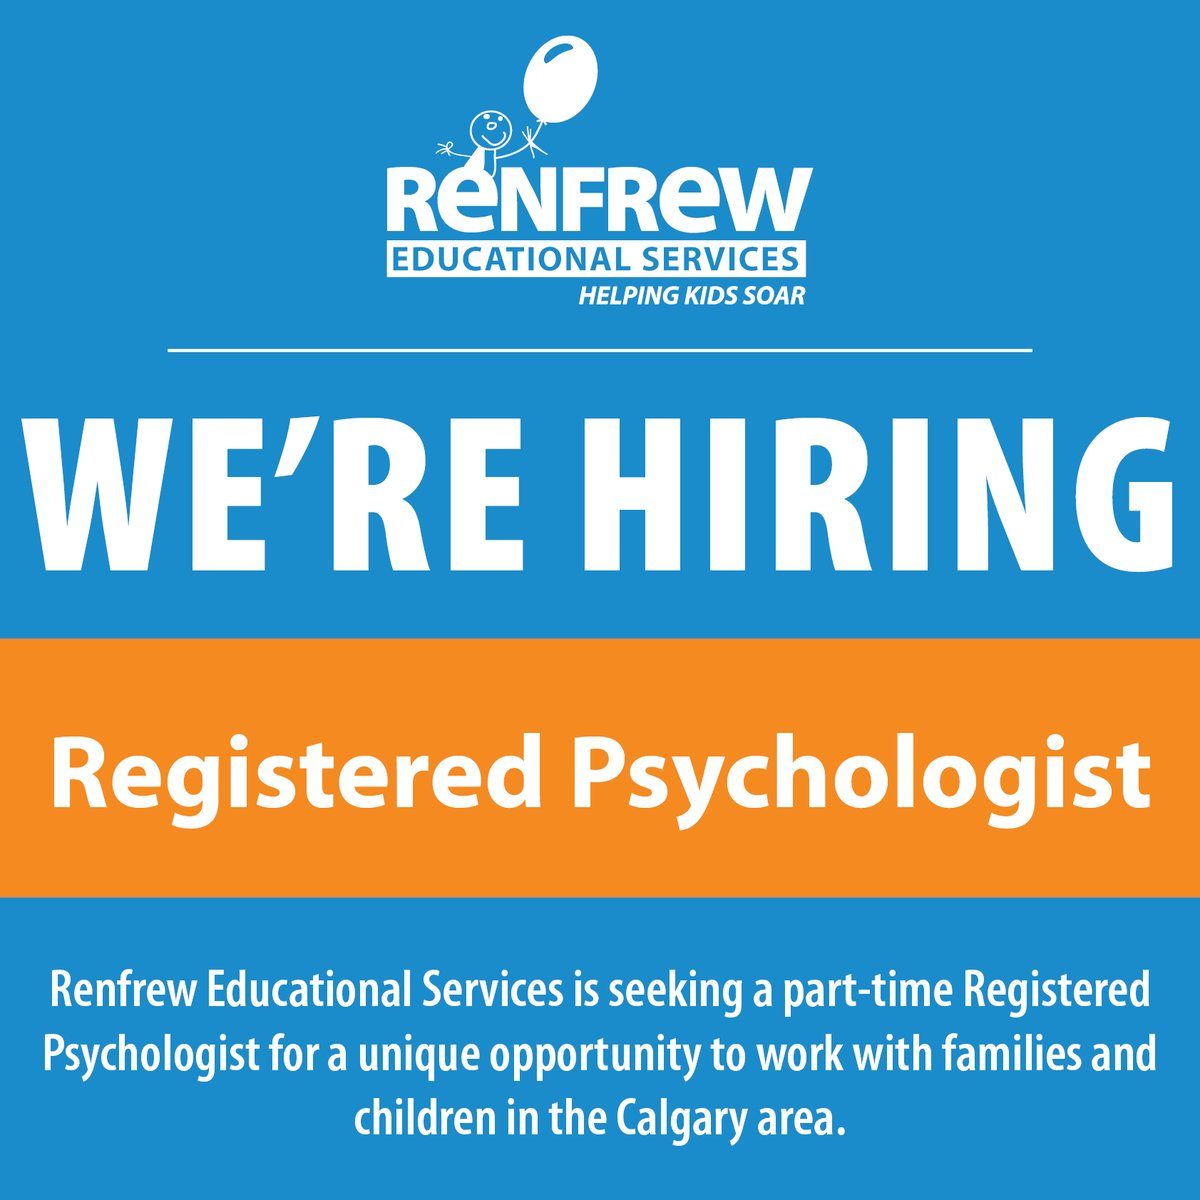 'Tis the season for a career change!  Qualified candidates are encouraged to apply to become Renfrew's newest part-time Registered Psychologist!  Apply here:   #YYCJobs #YYCNow #RESCalgary #HelpingKidsSoar